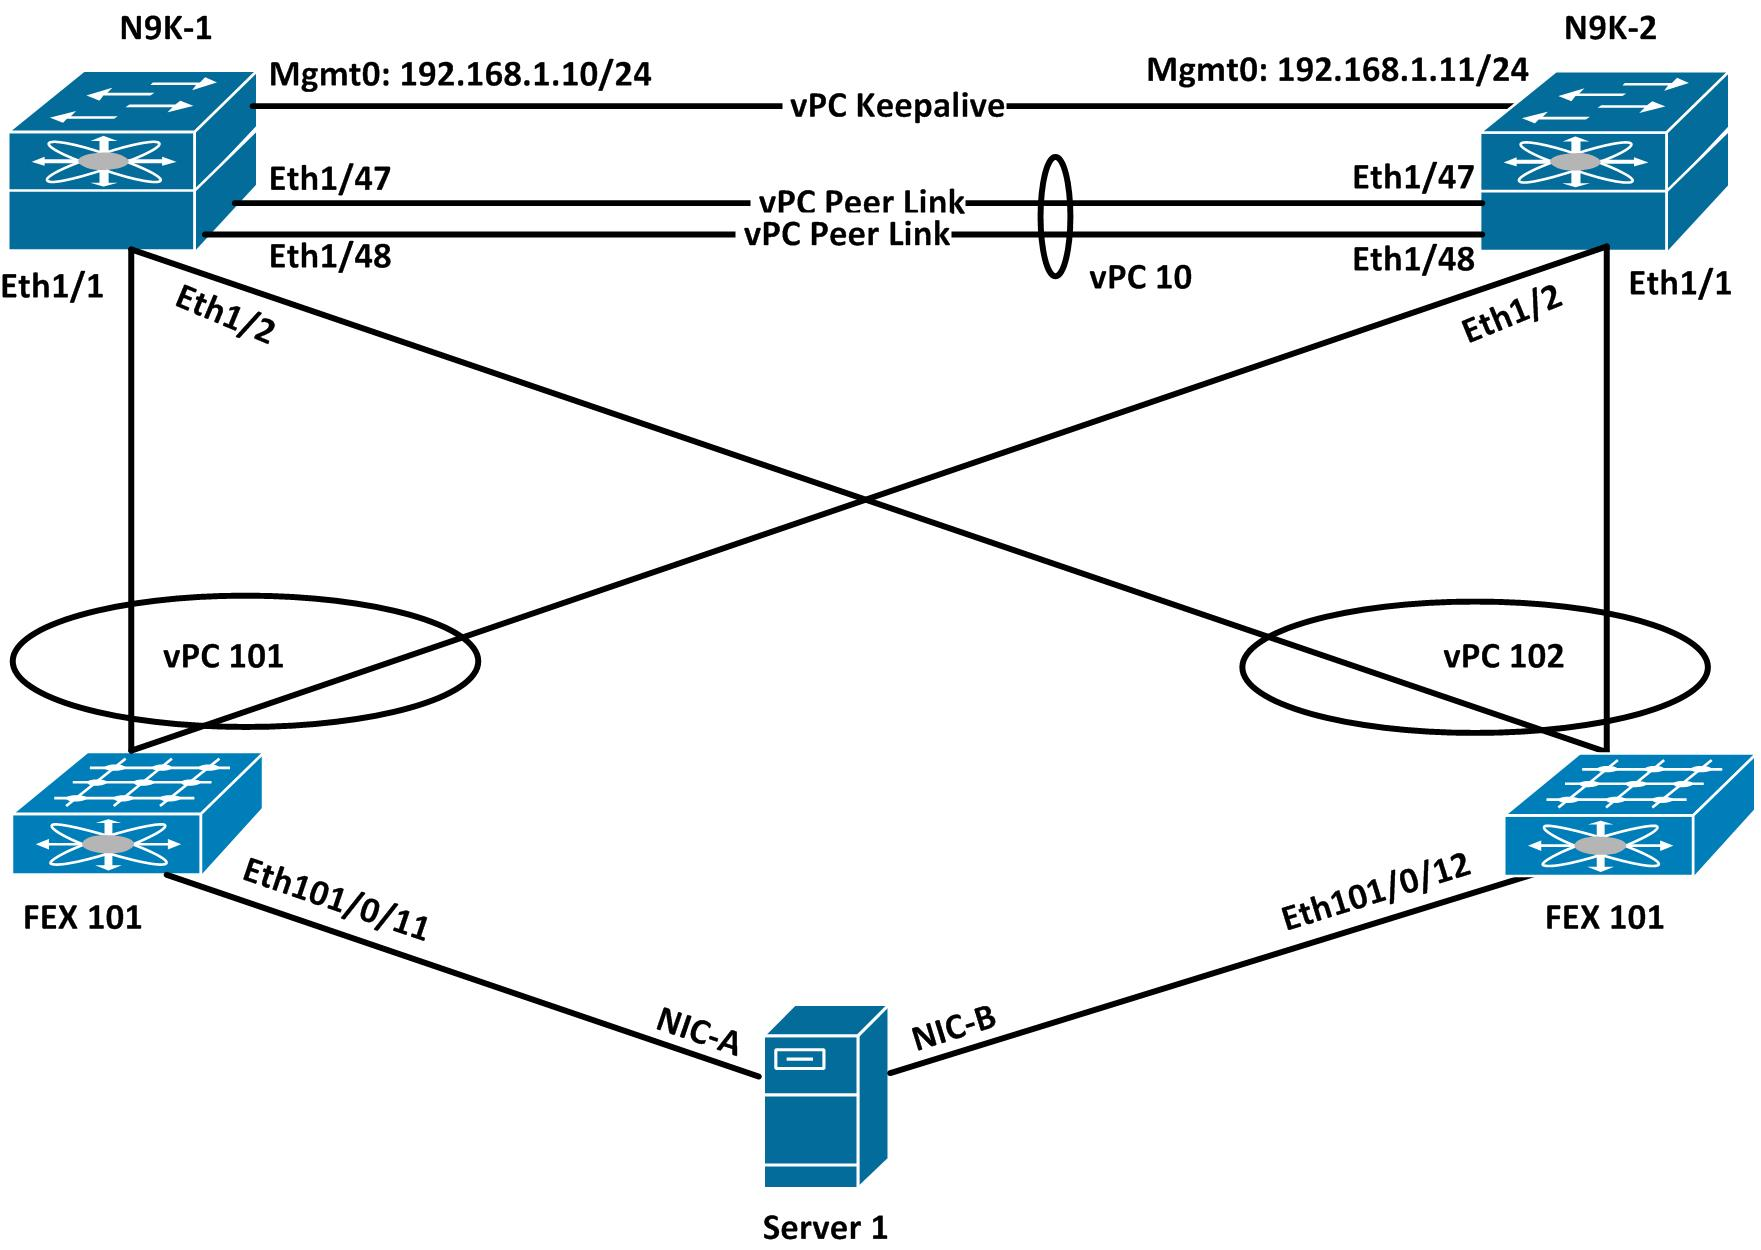 Supported Topology for Nexus 9K